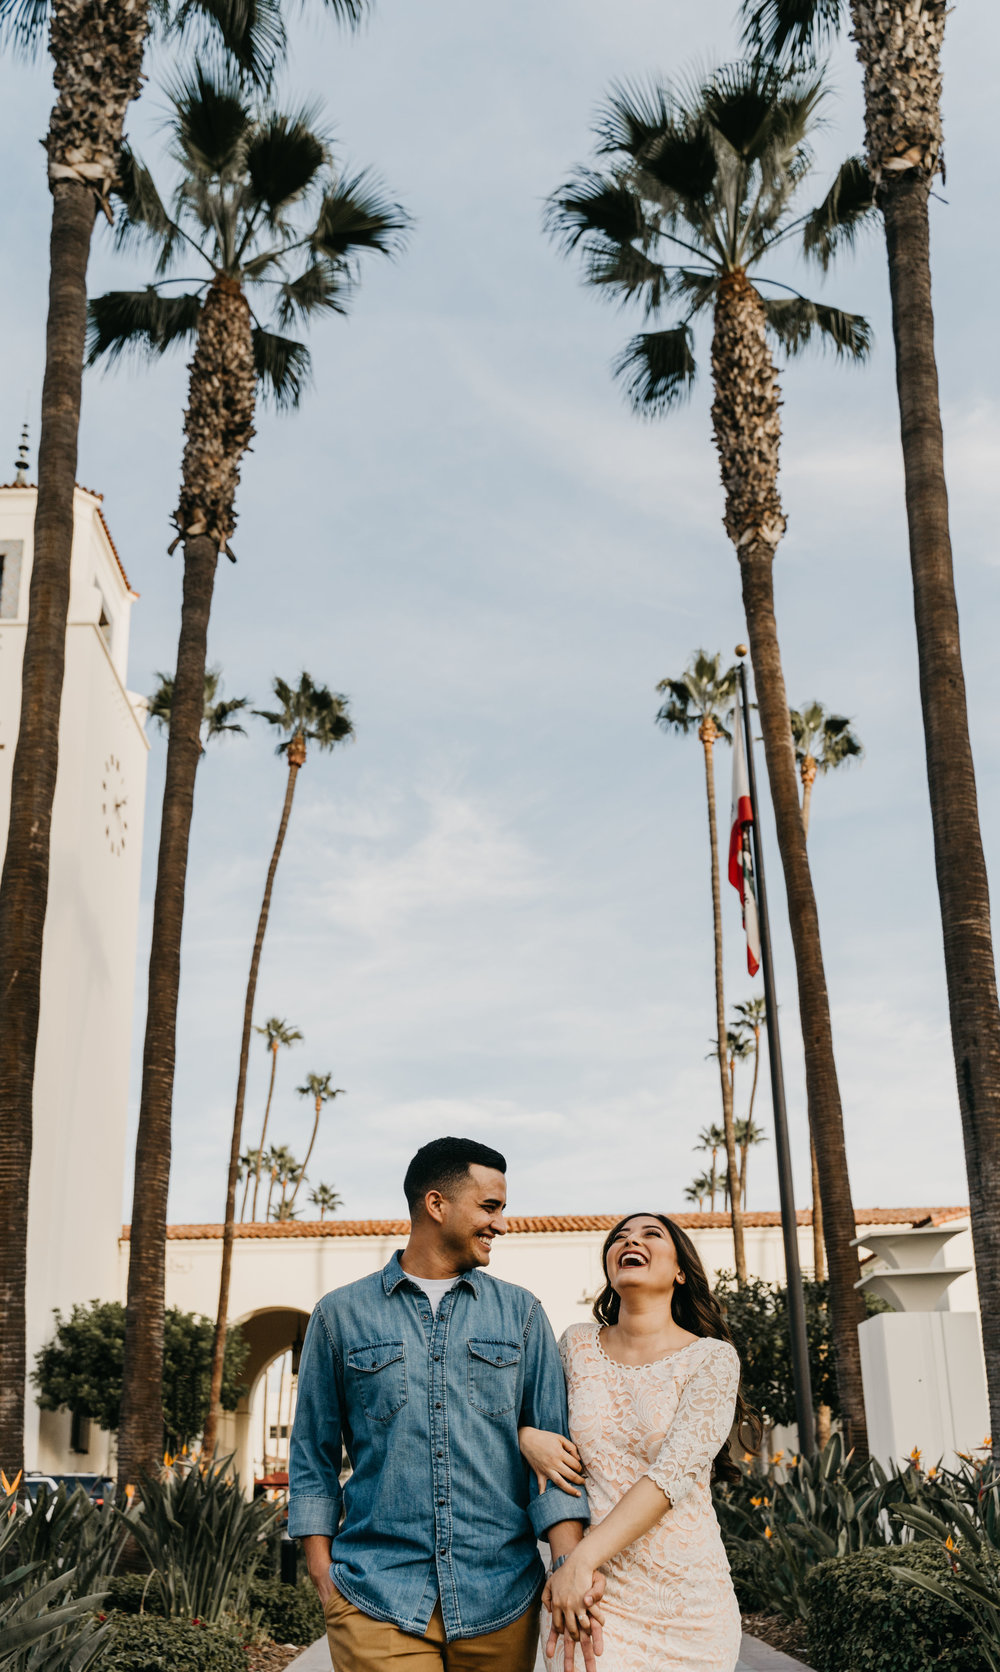 Candid, raw, real, authentic wedding photos - southern california wedding photographer serving Los Angeles, orange county and beyond